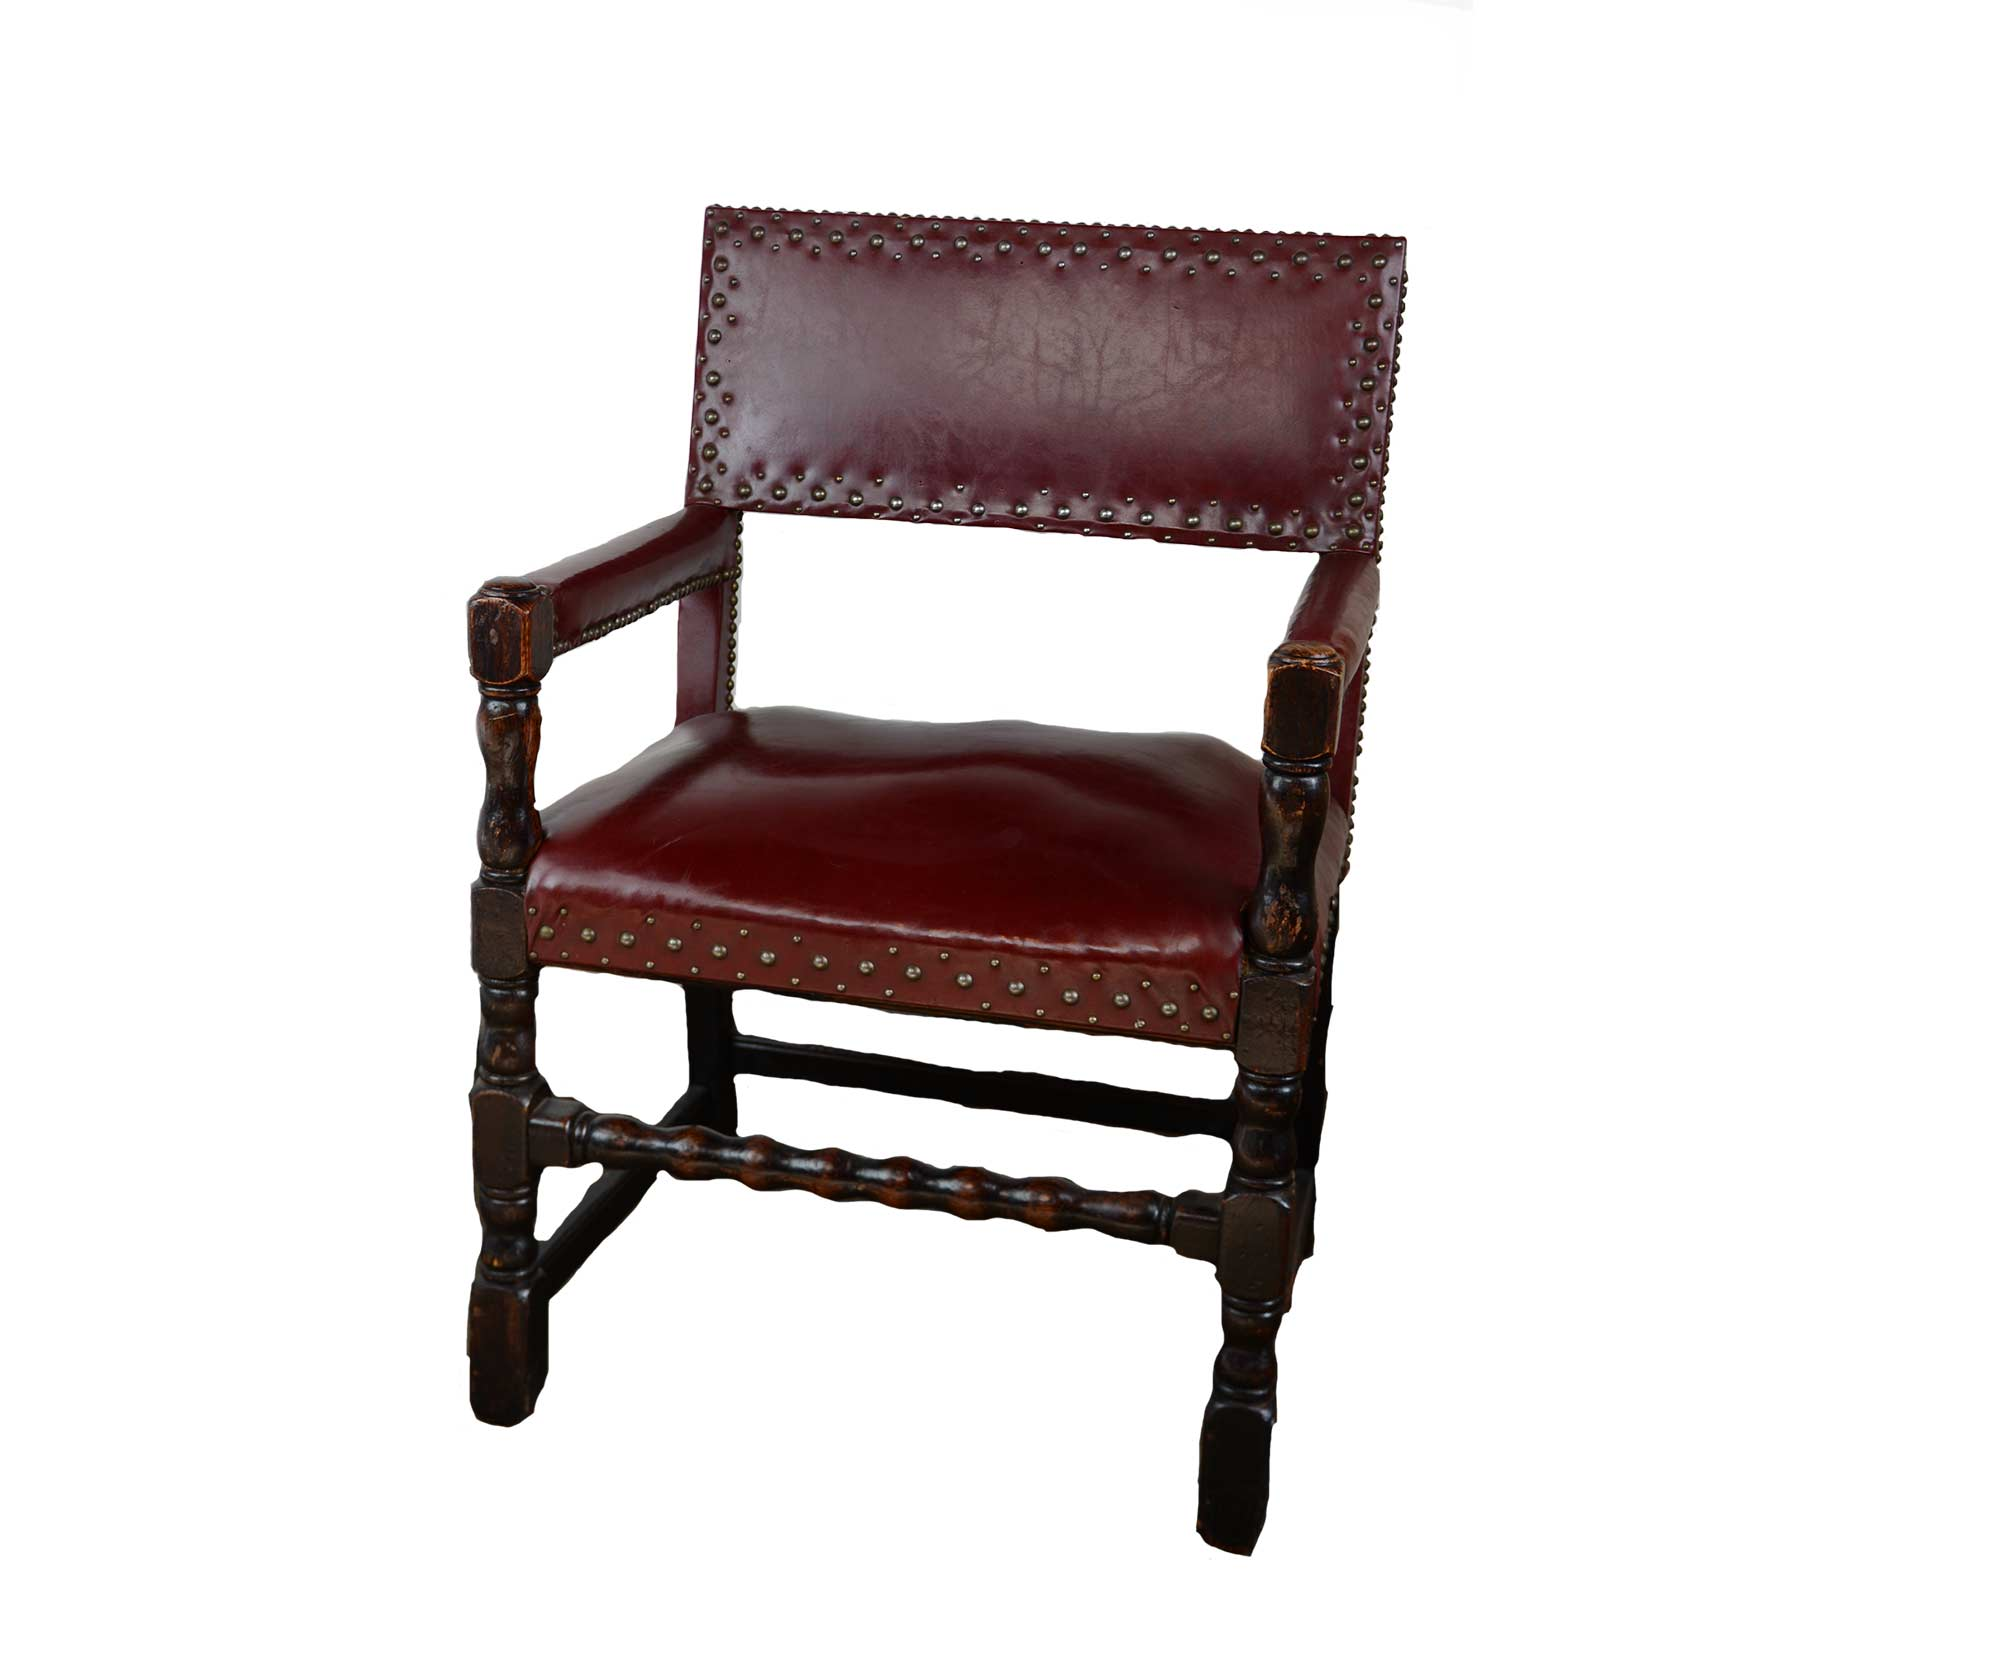 - Looking for that Oak Grill Chair in the corner? We have four!